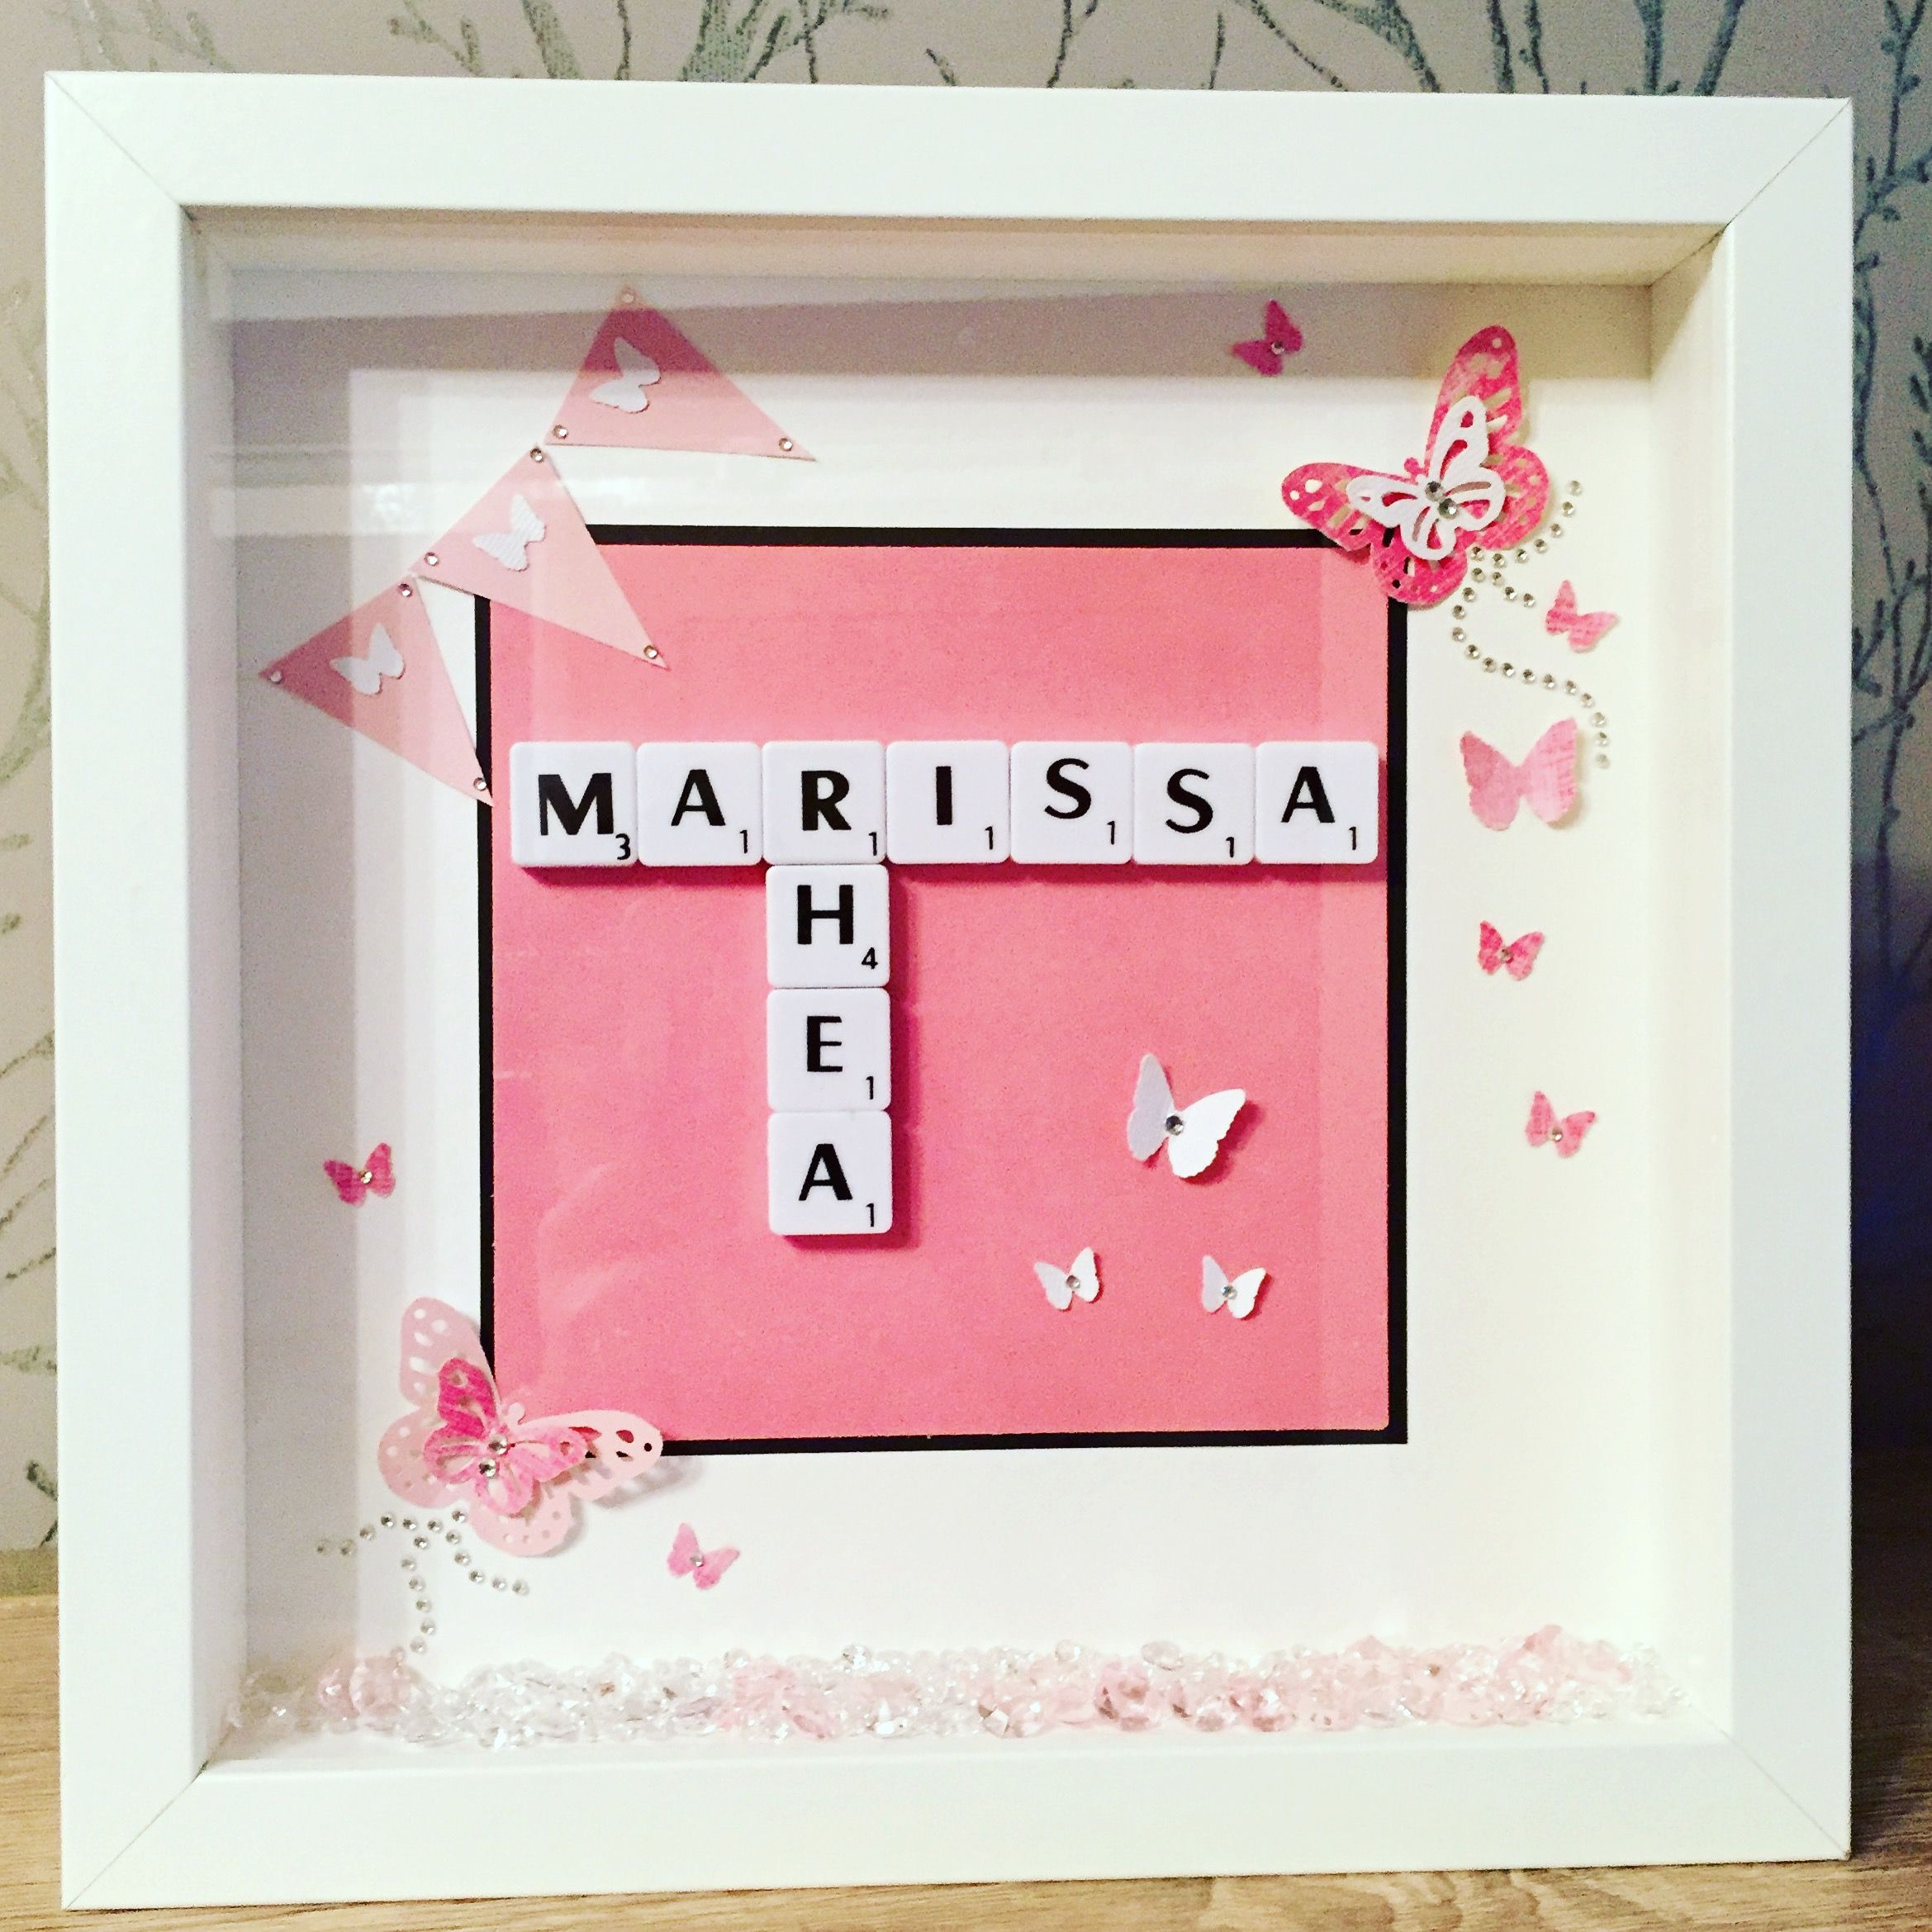 Pin by Time To Celebrate Cards & Gifts on My Handmade Frames ...